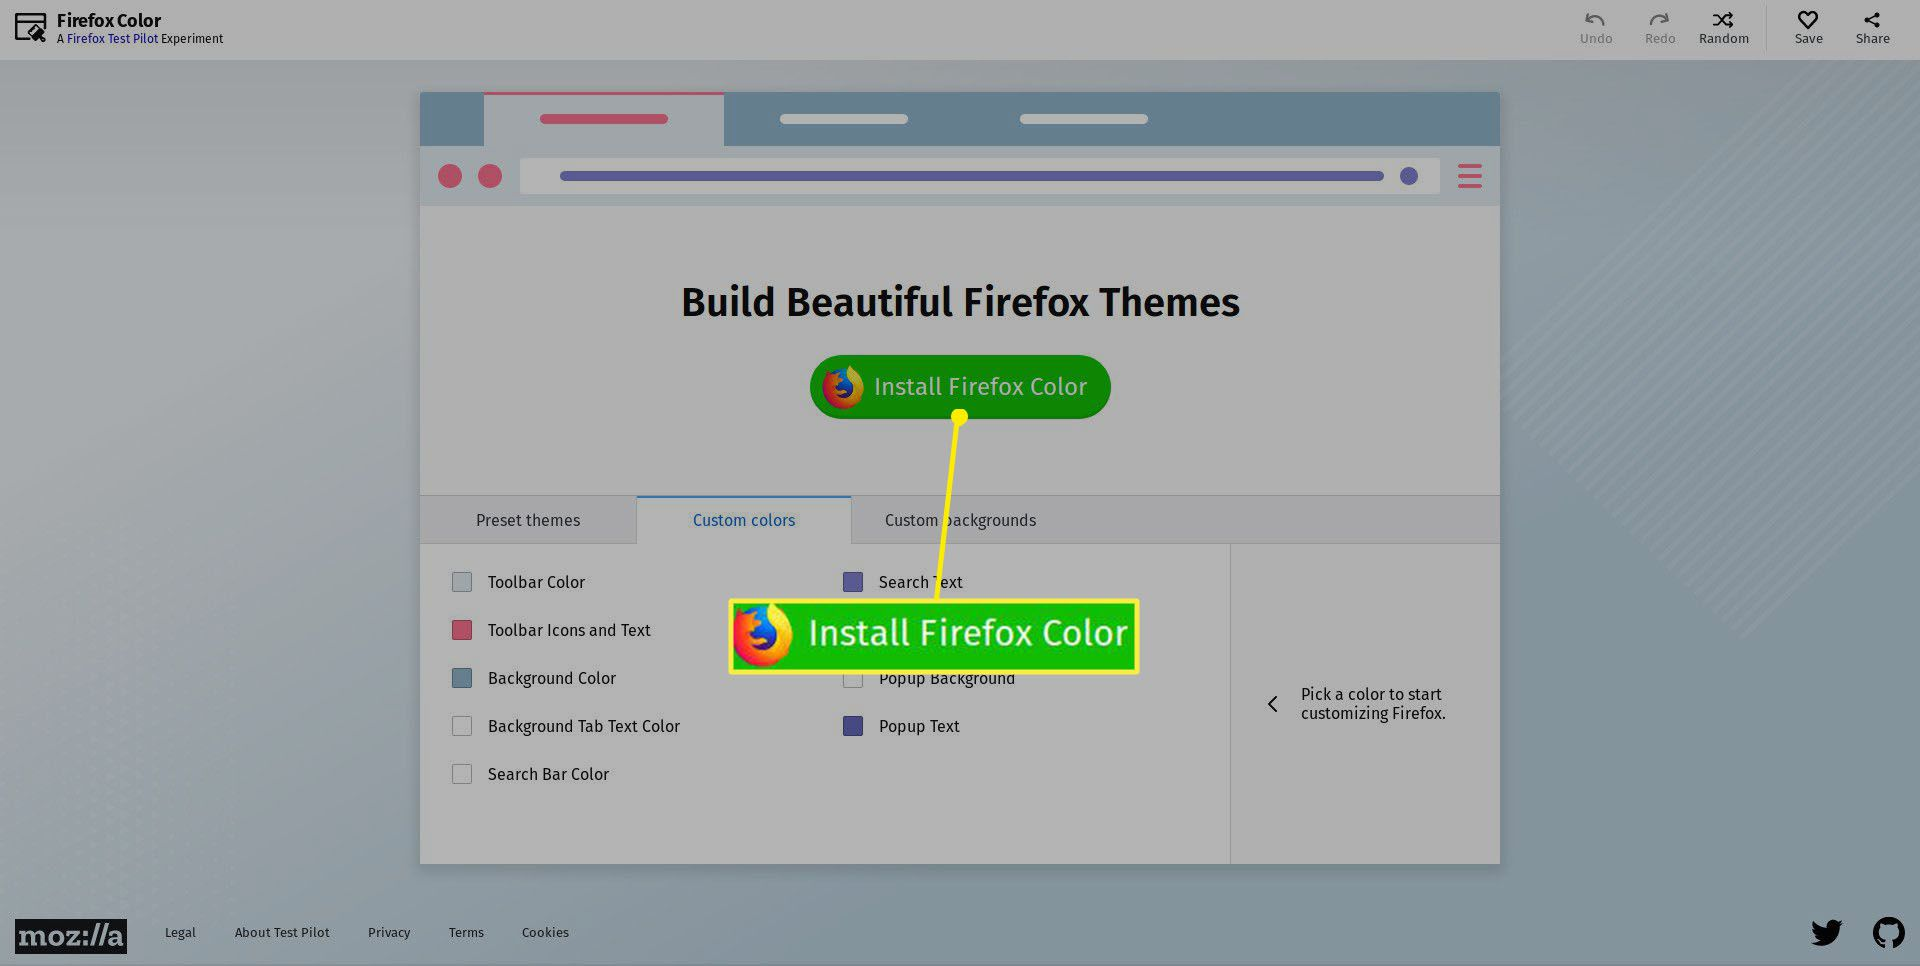 Install the Firefox Color add-on